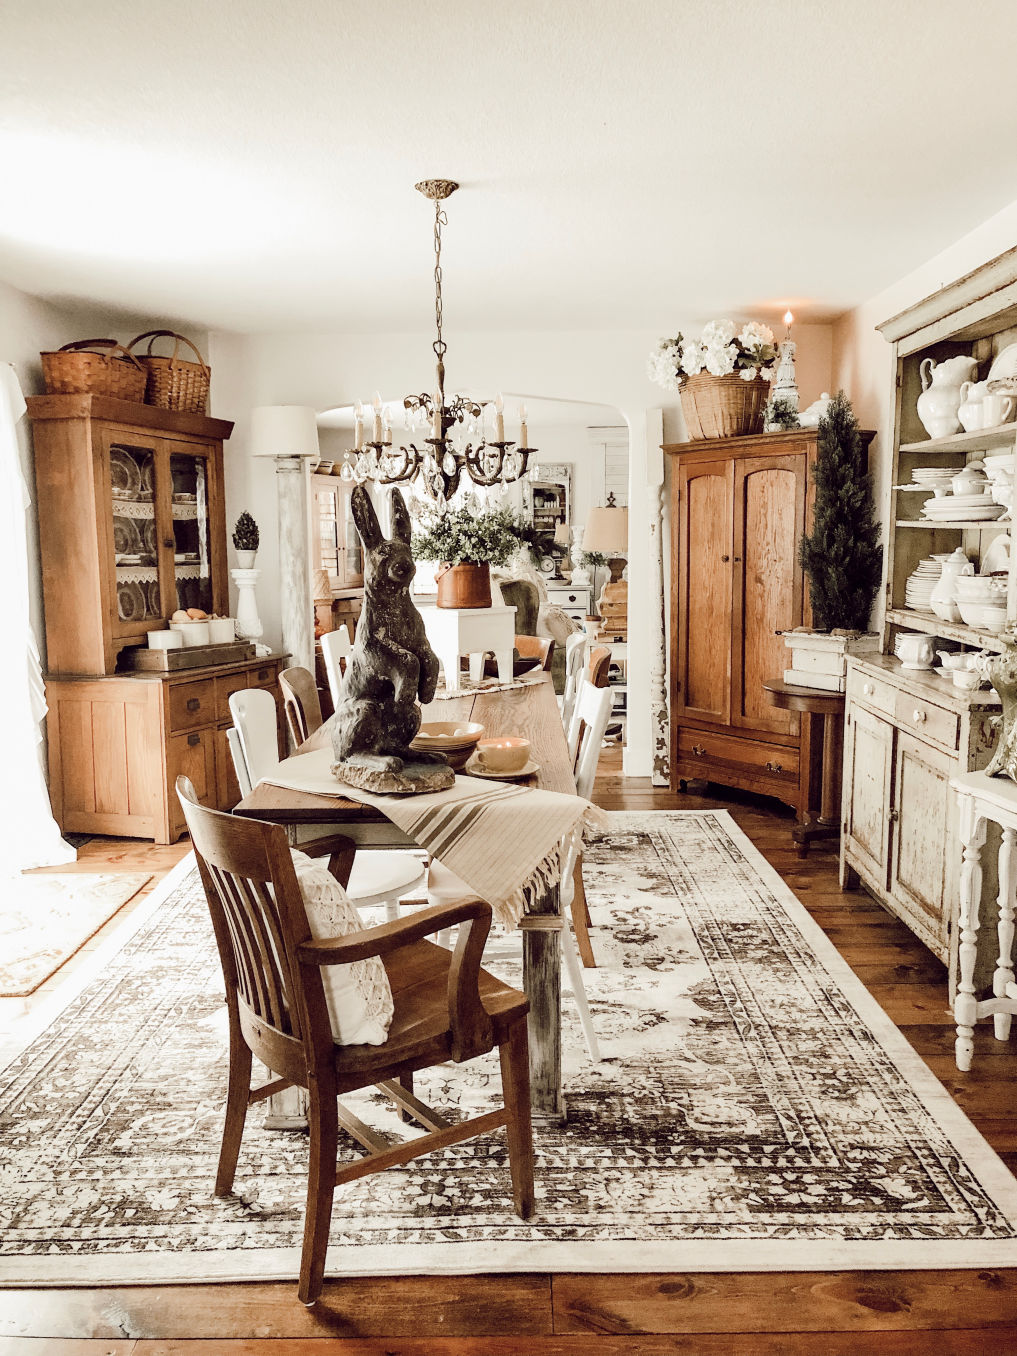 Love this vintage dining room with mismatched chairs and hutches #diningroom #vintagedecor #vintagestyle #diningroomdecor #farmhousestyle #farmhousediningroom #farmhousedecor